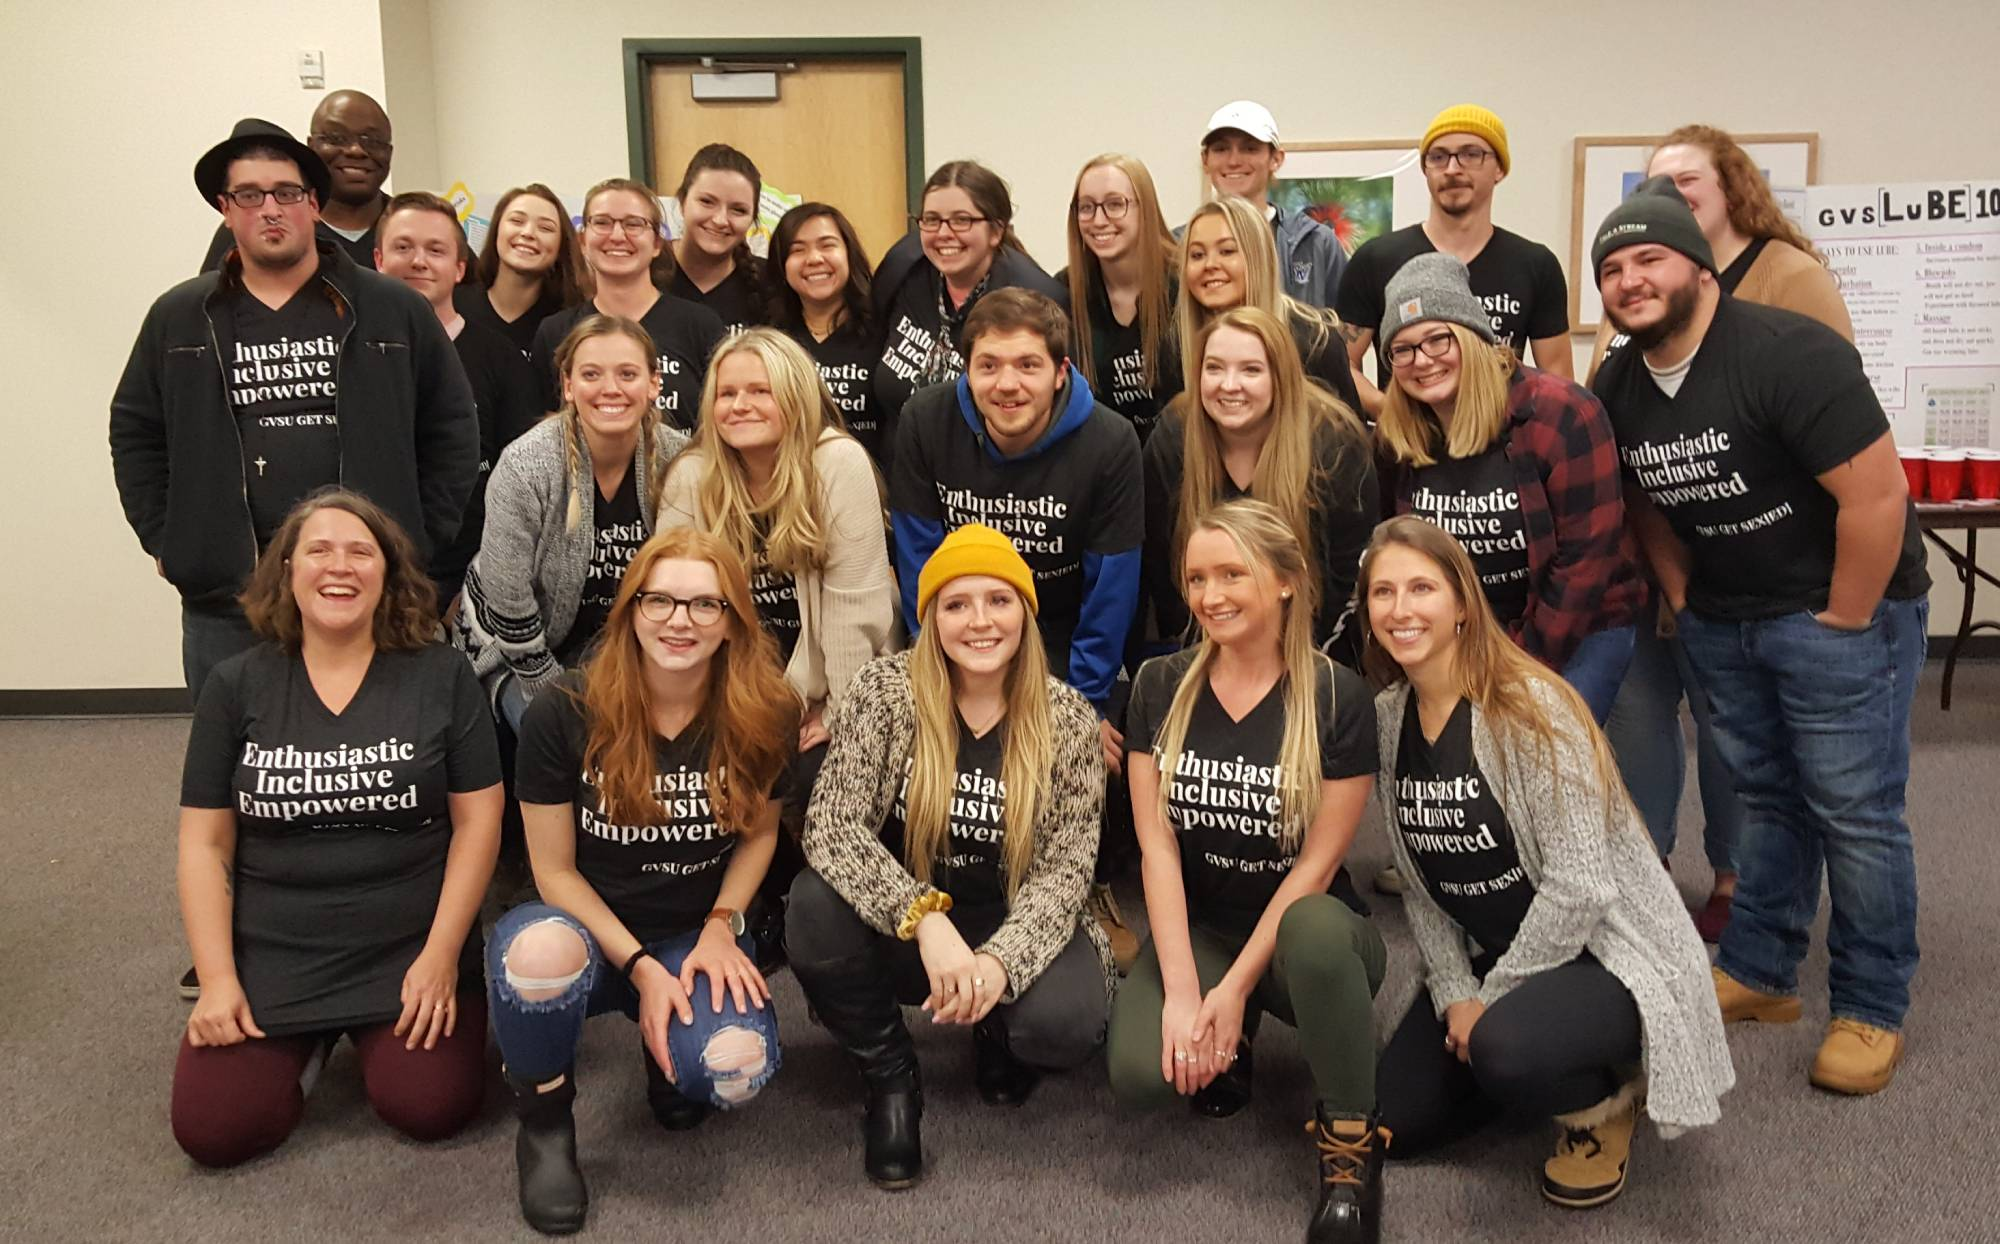 LIB 326 Sexuality, Justice and Advocacy Fall 2018